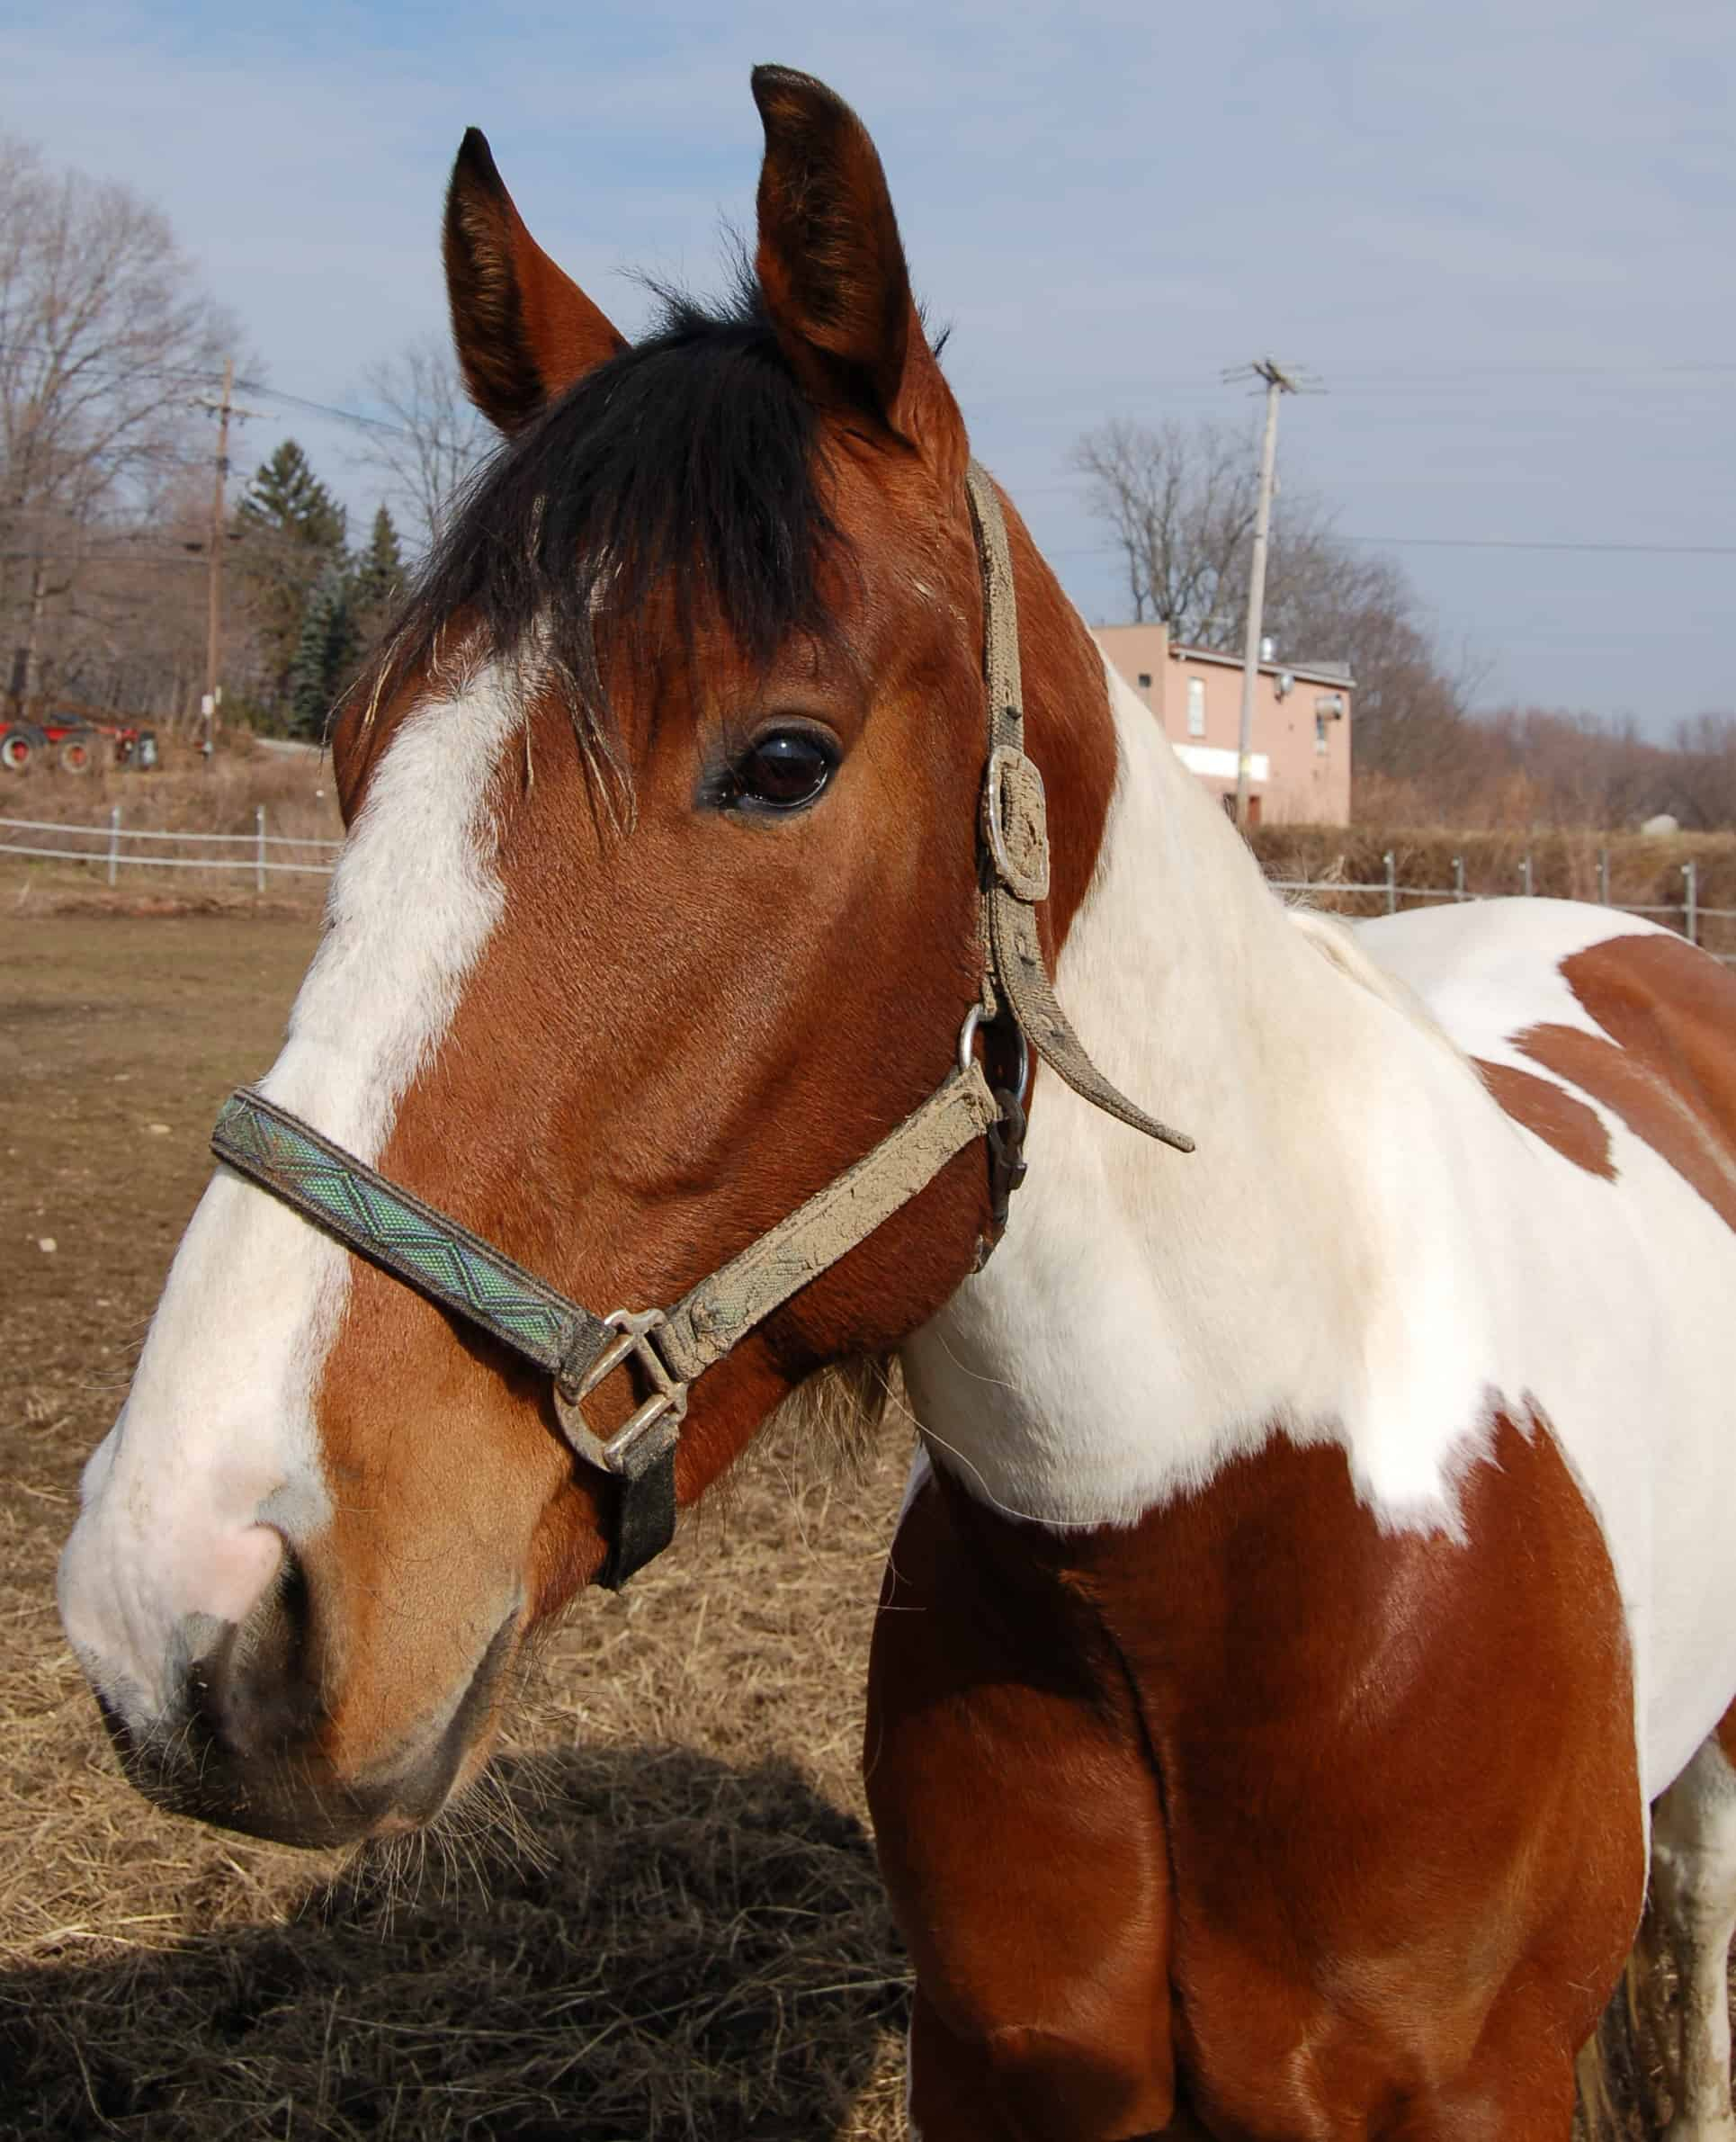 An American Paint horse in the pasture.